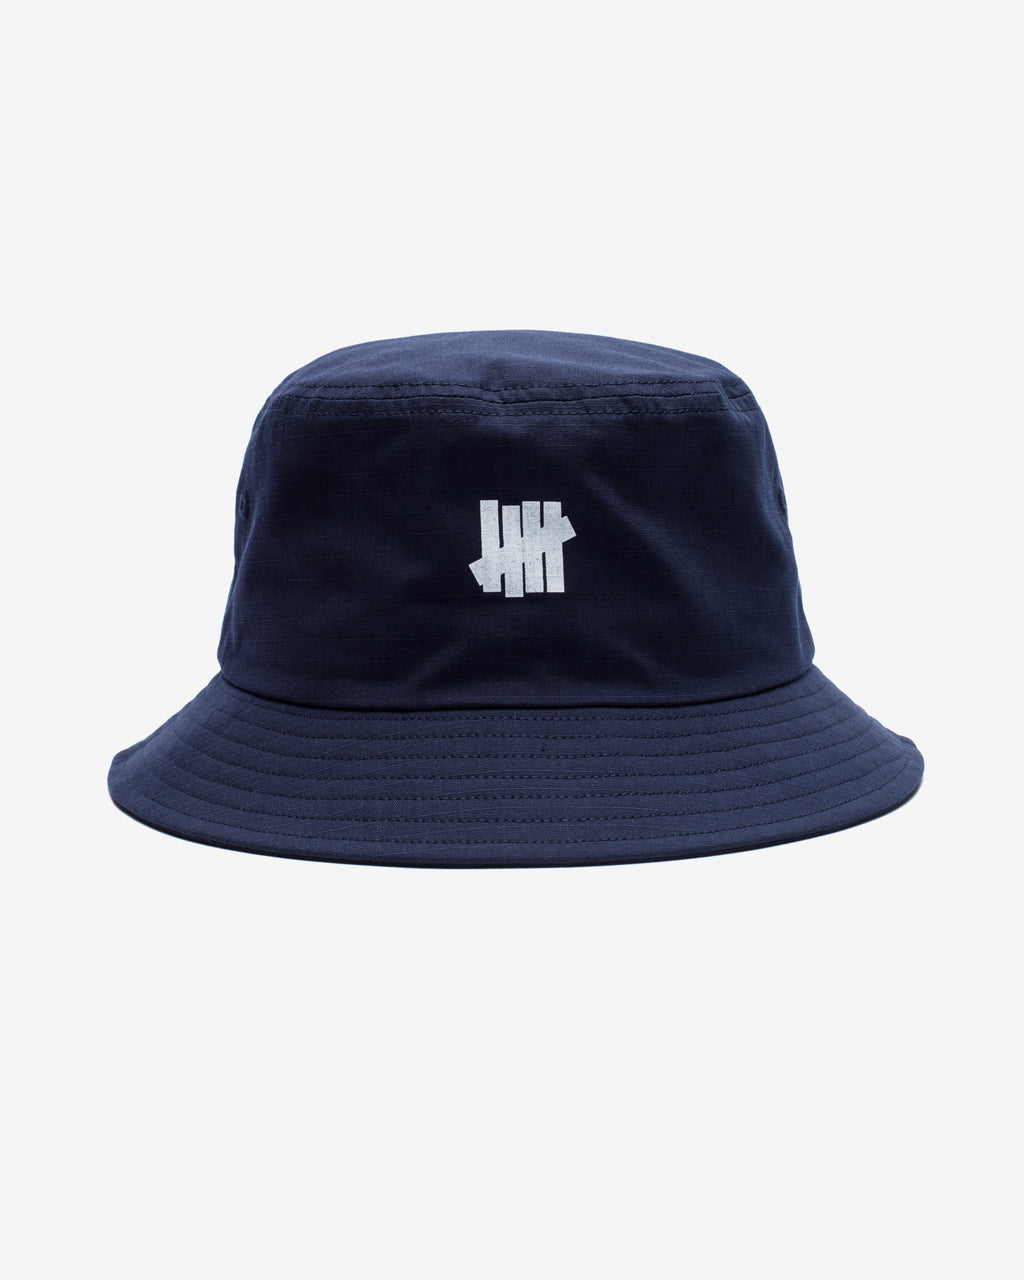 UNDEFEATED RIPSTOP 5 STRIKE BUCKET HAT - NAVY